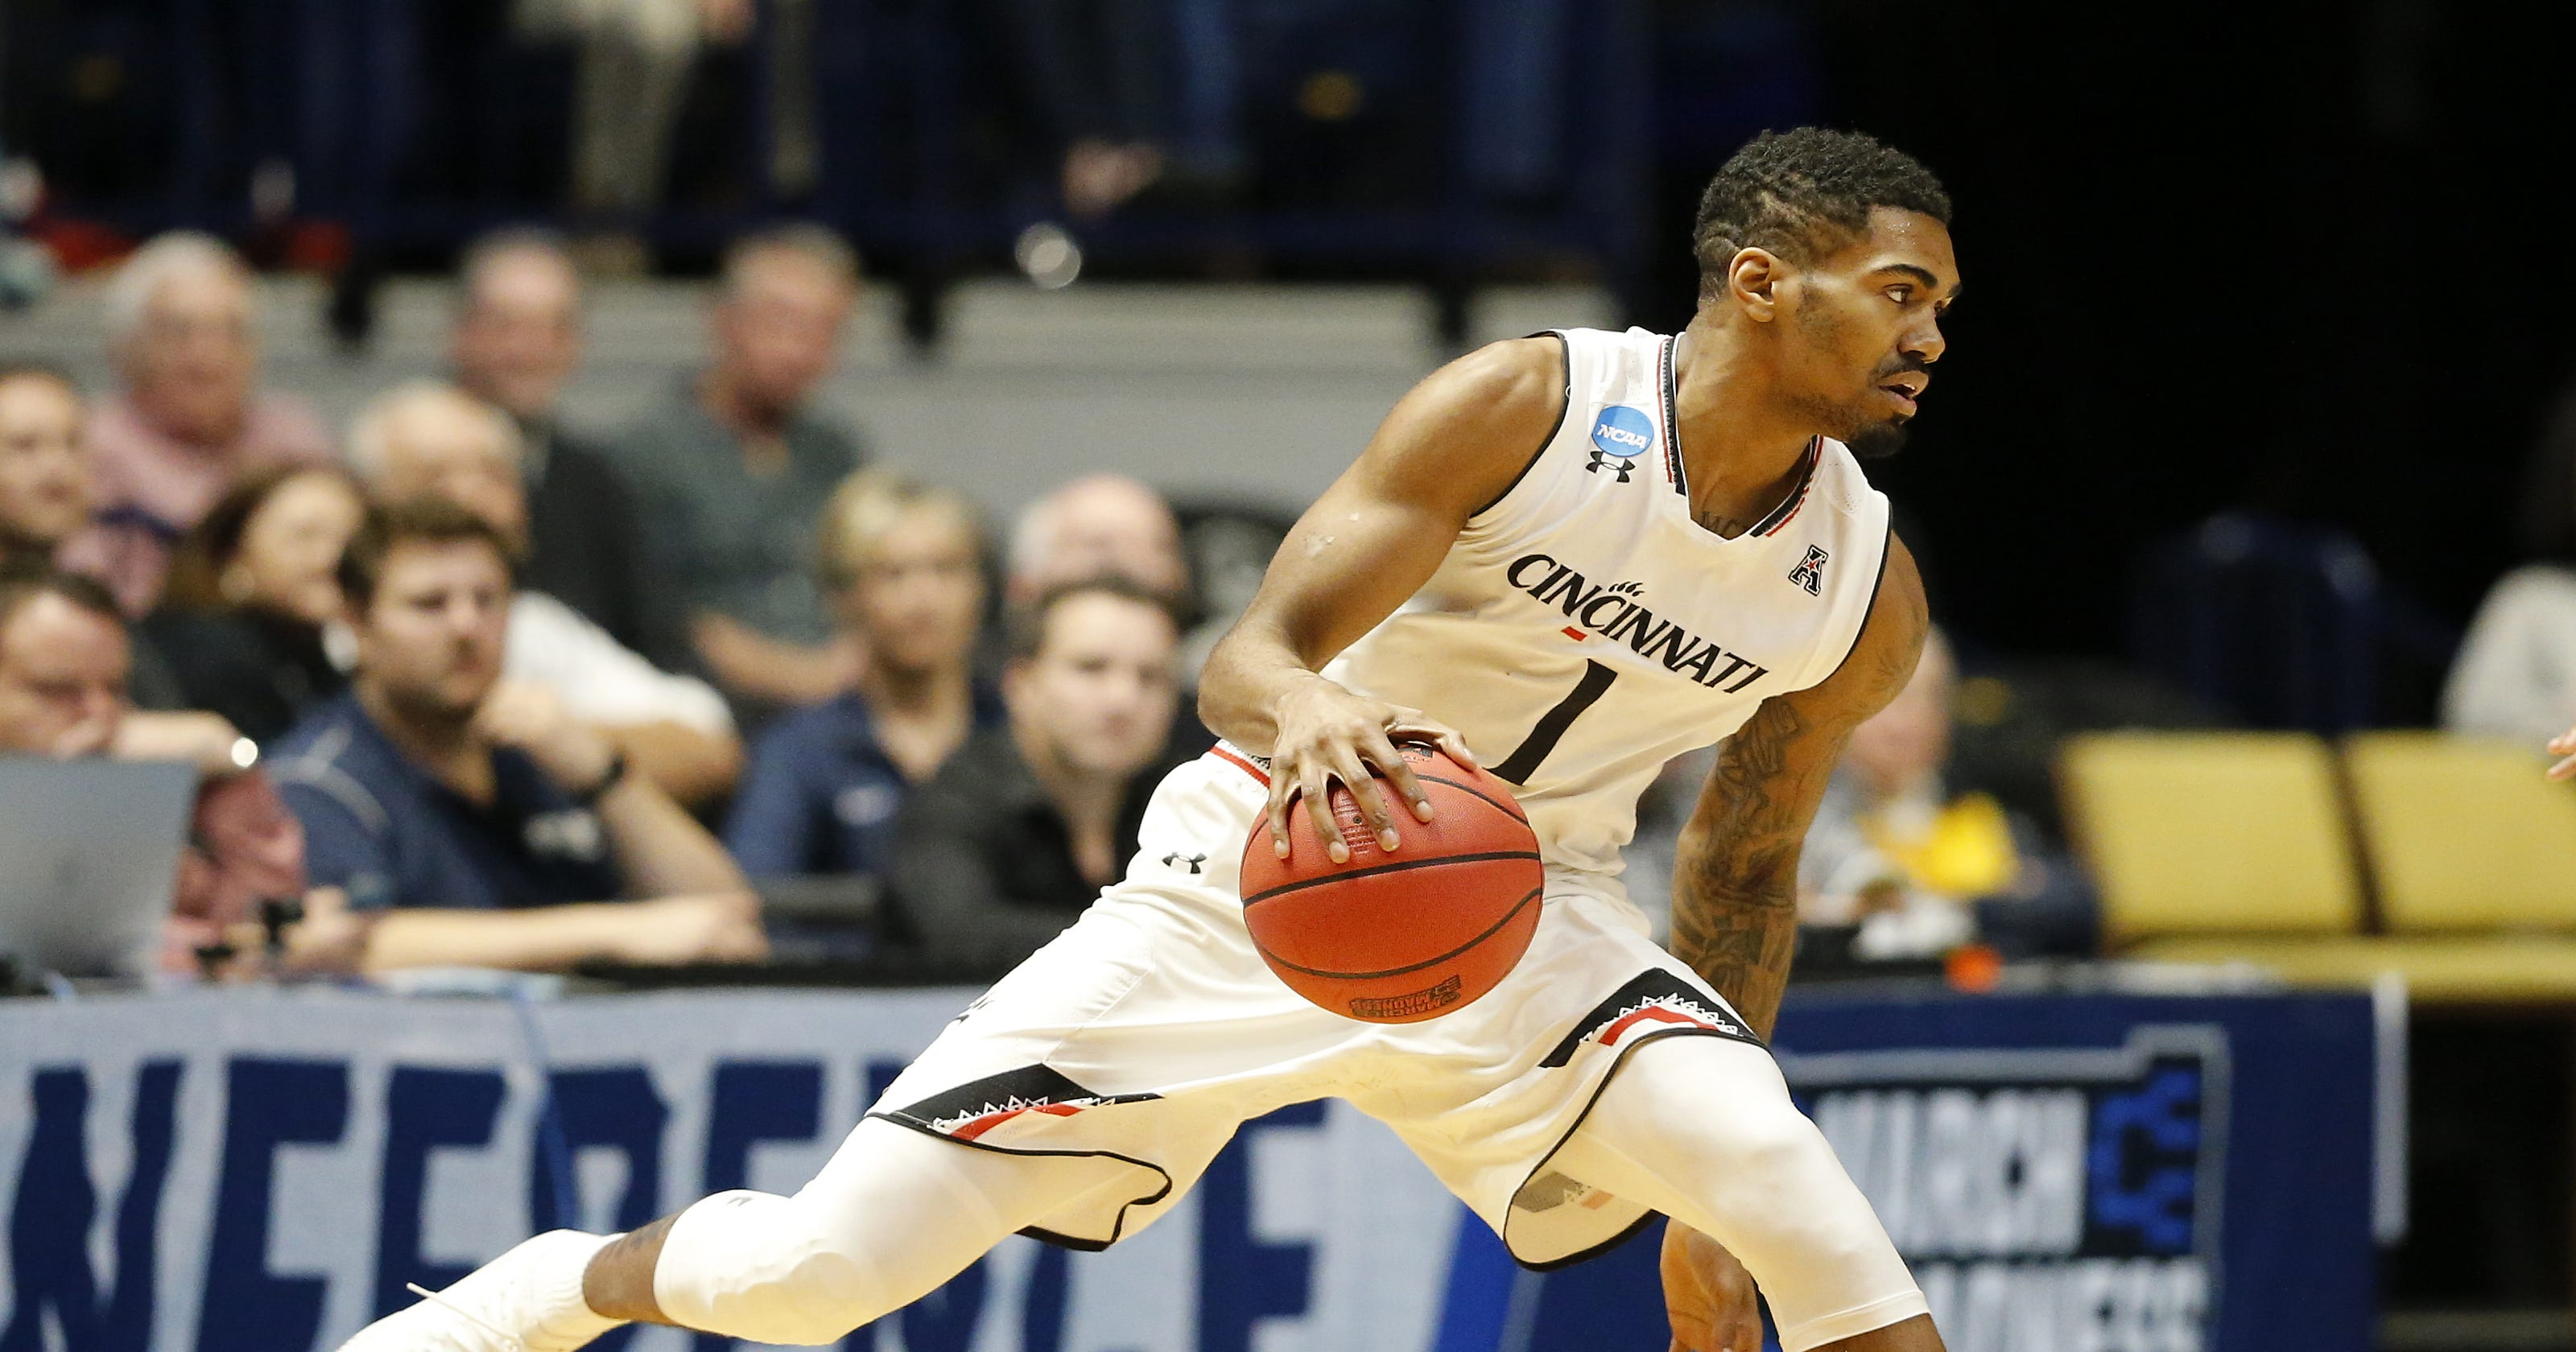 Cincinnati Bearcats  Jacob Evans III drafted in 1st round by NBA champion Golden  State 41af134e3